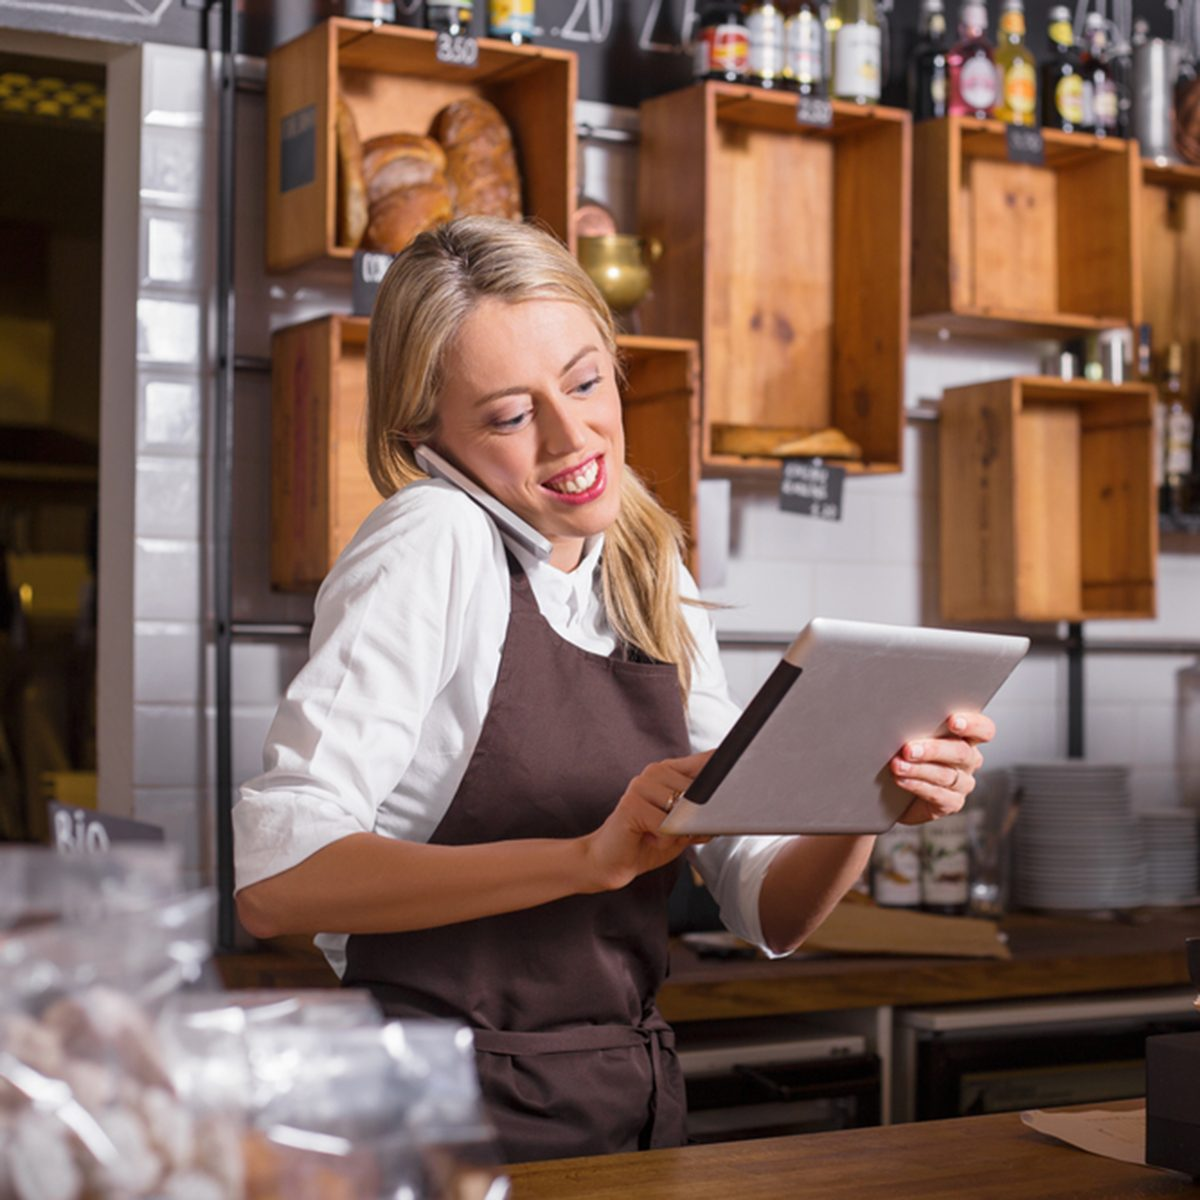 Female barista talking on the phone and using tablet while standing behind the counter